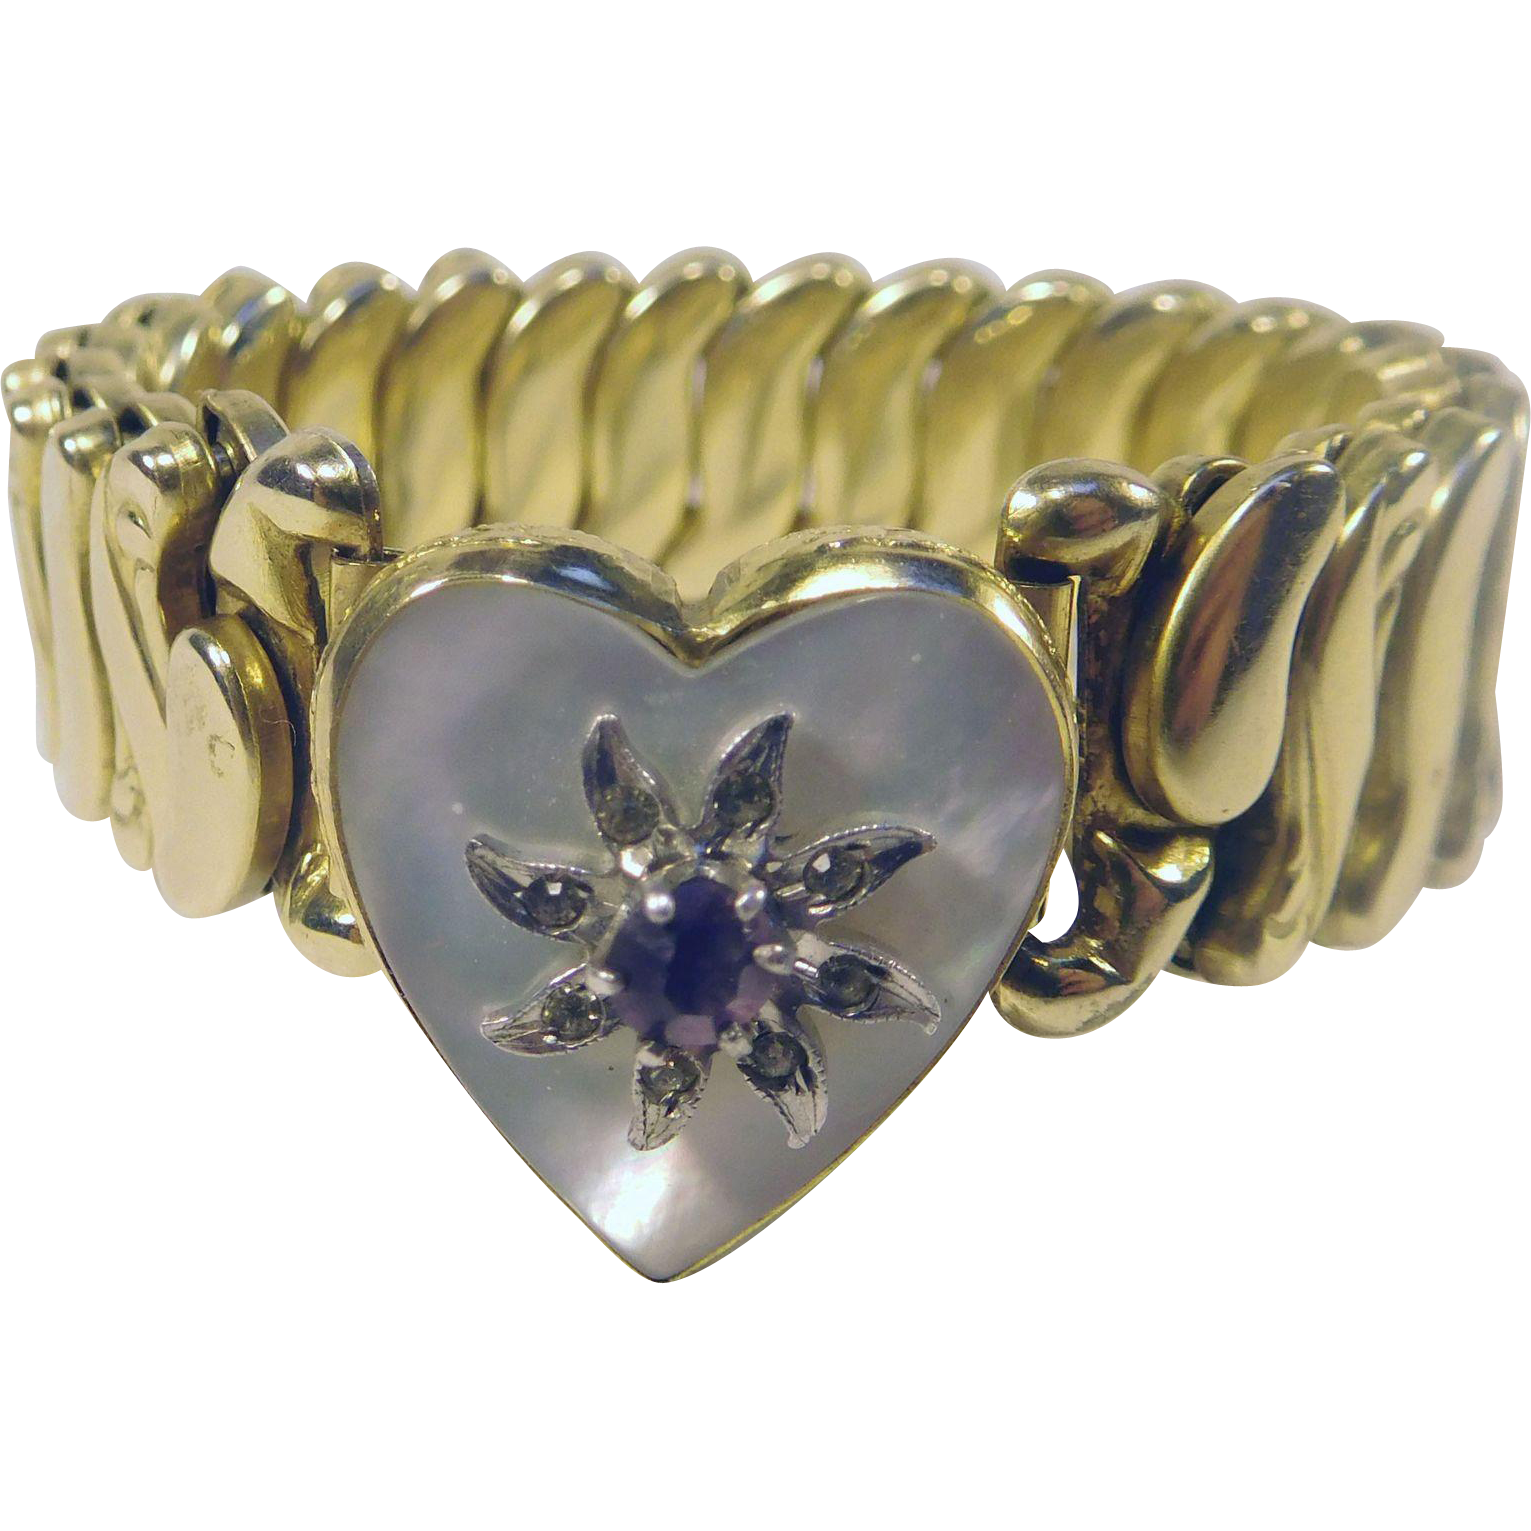 bugbee niles gold filled sweetheart bracelet with mother